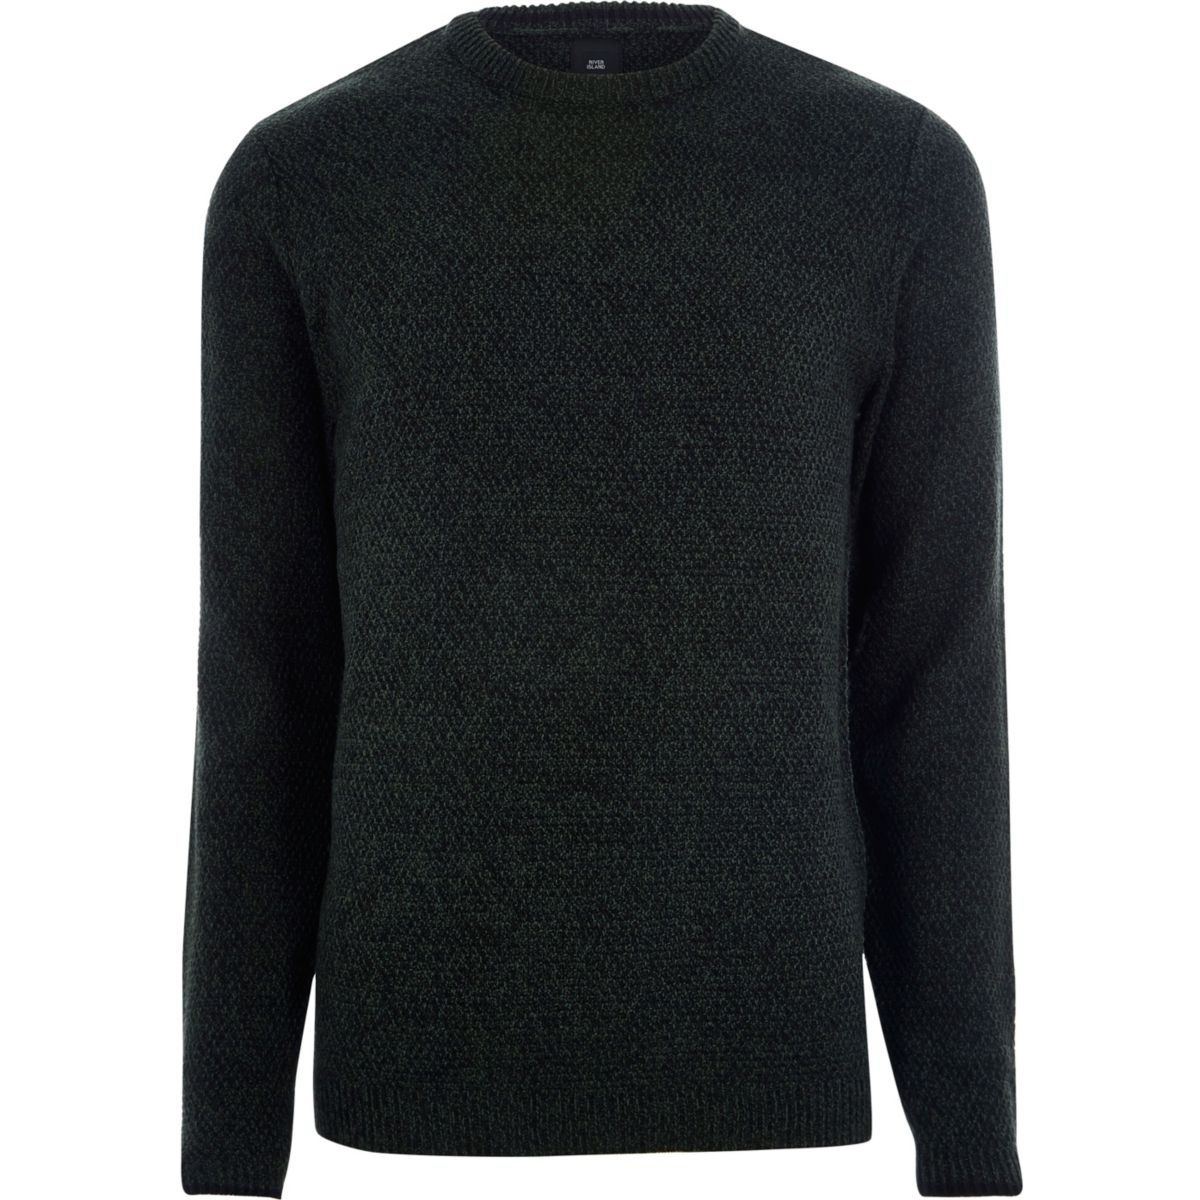 Green textured knit slim fit crew neck sweater